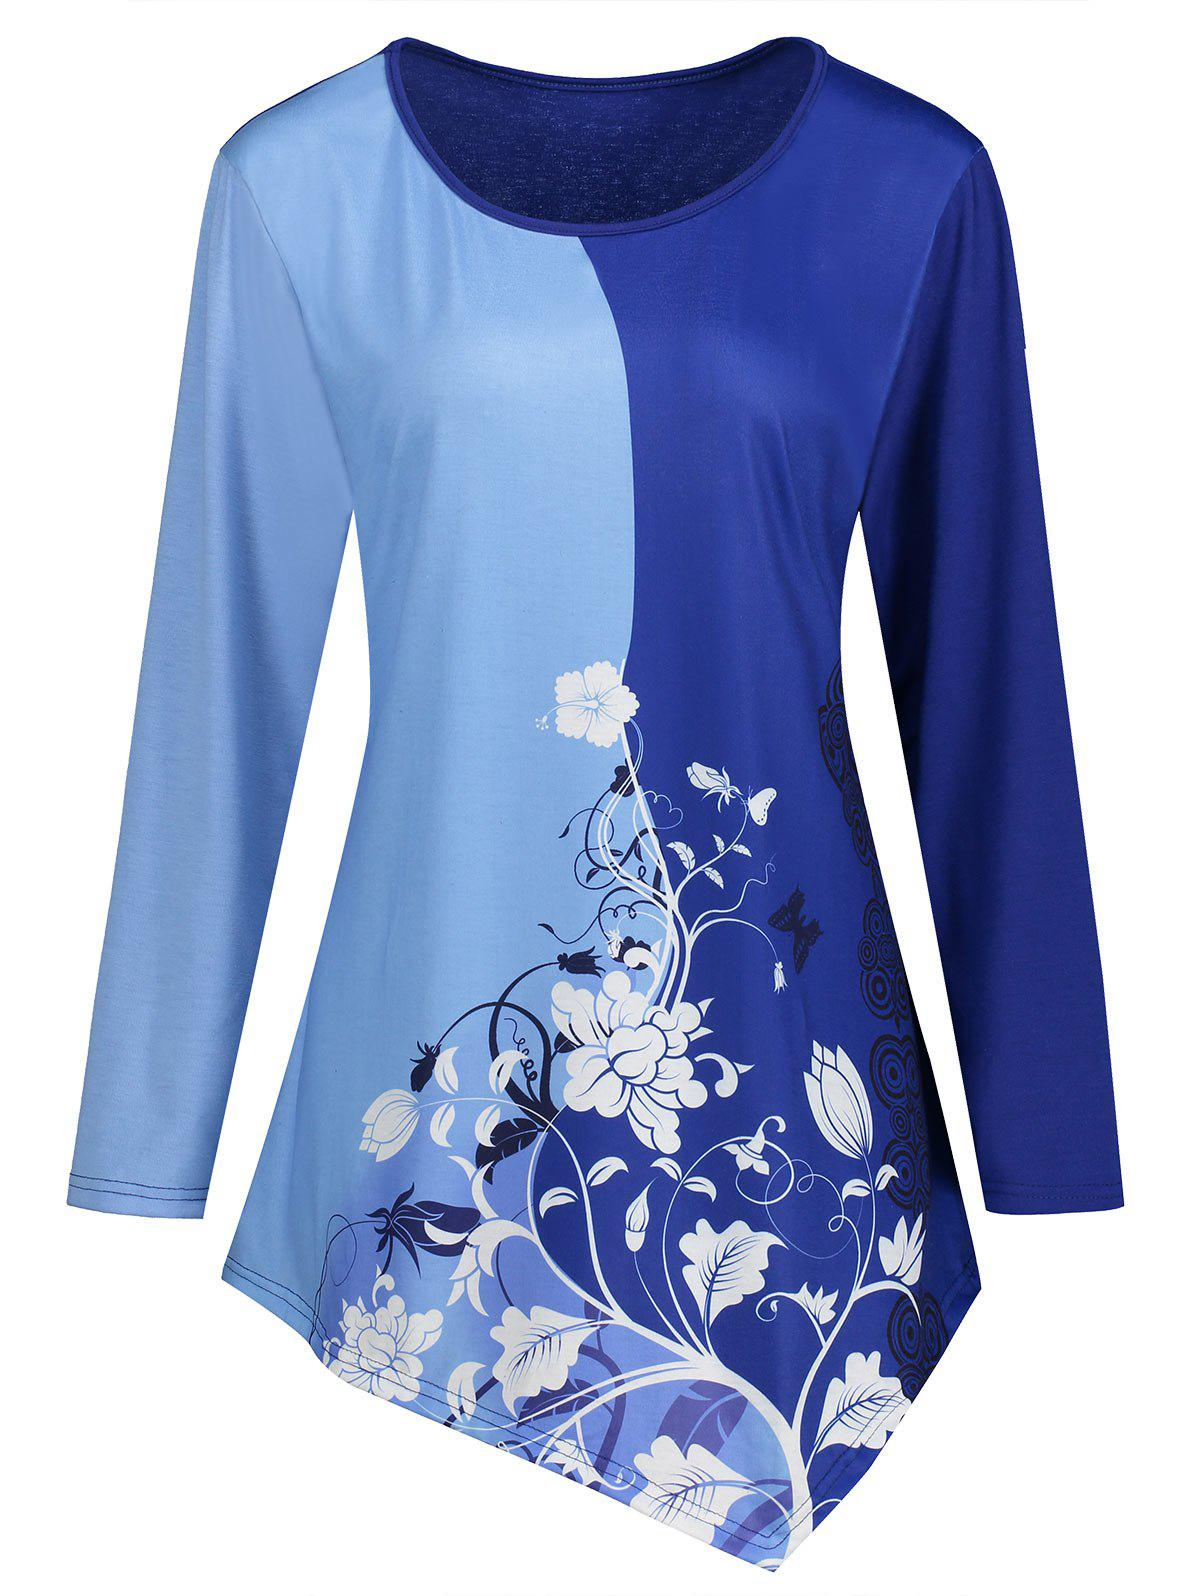 Floral Print Two Tone Asymmetrical Plus Size T-shirtWOMEN<br><br>Size: 4XL; Color: BLUE; Material: Polyester; Shirt Length: Long; Sleeve Length: Full; Collar: Round Neck; Style: Fashion; Season: Fall,Spring; Pattern Type: Floral; Weight: 0.2750kg; Package Contents: 1 x T-shirt;